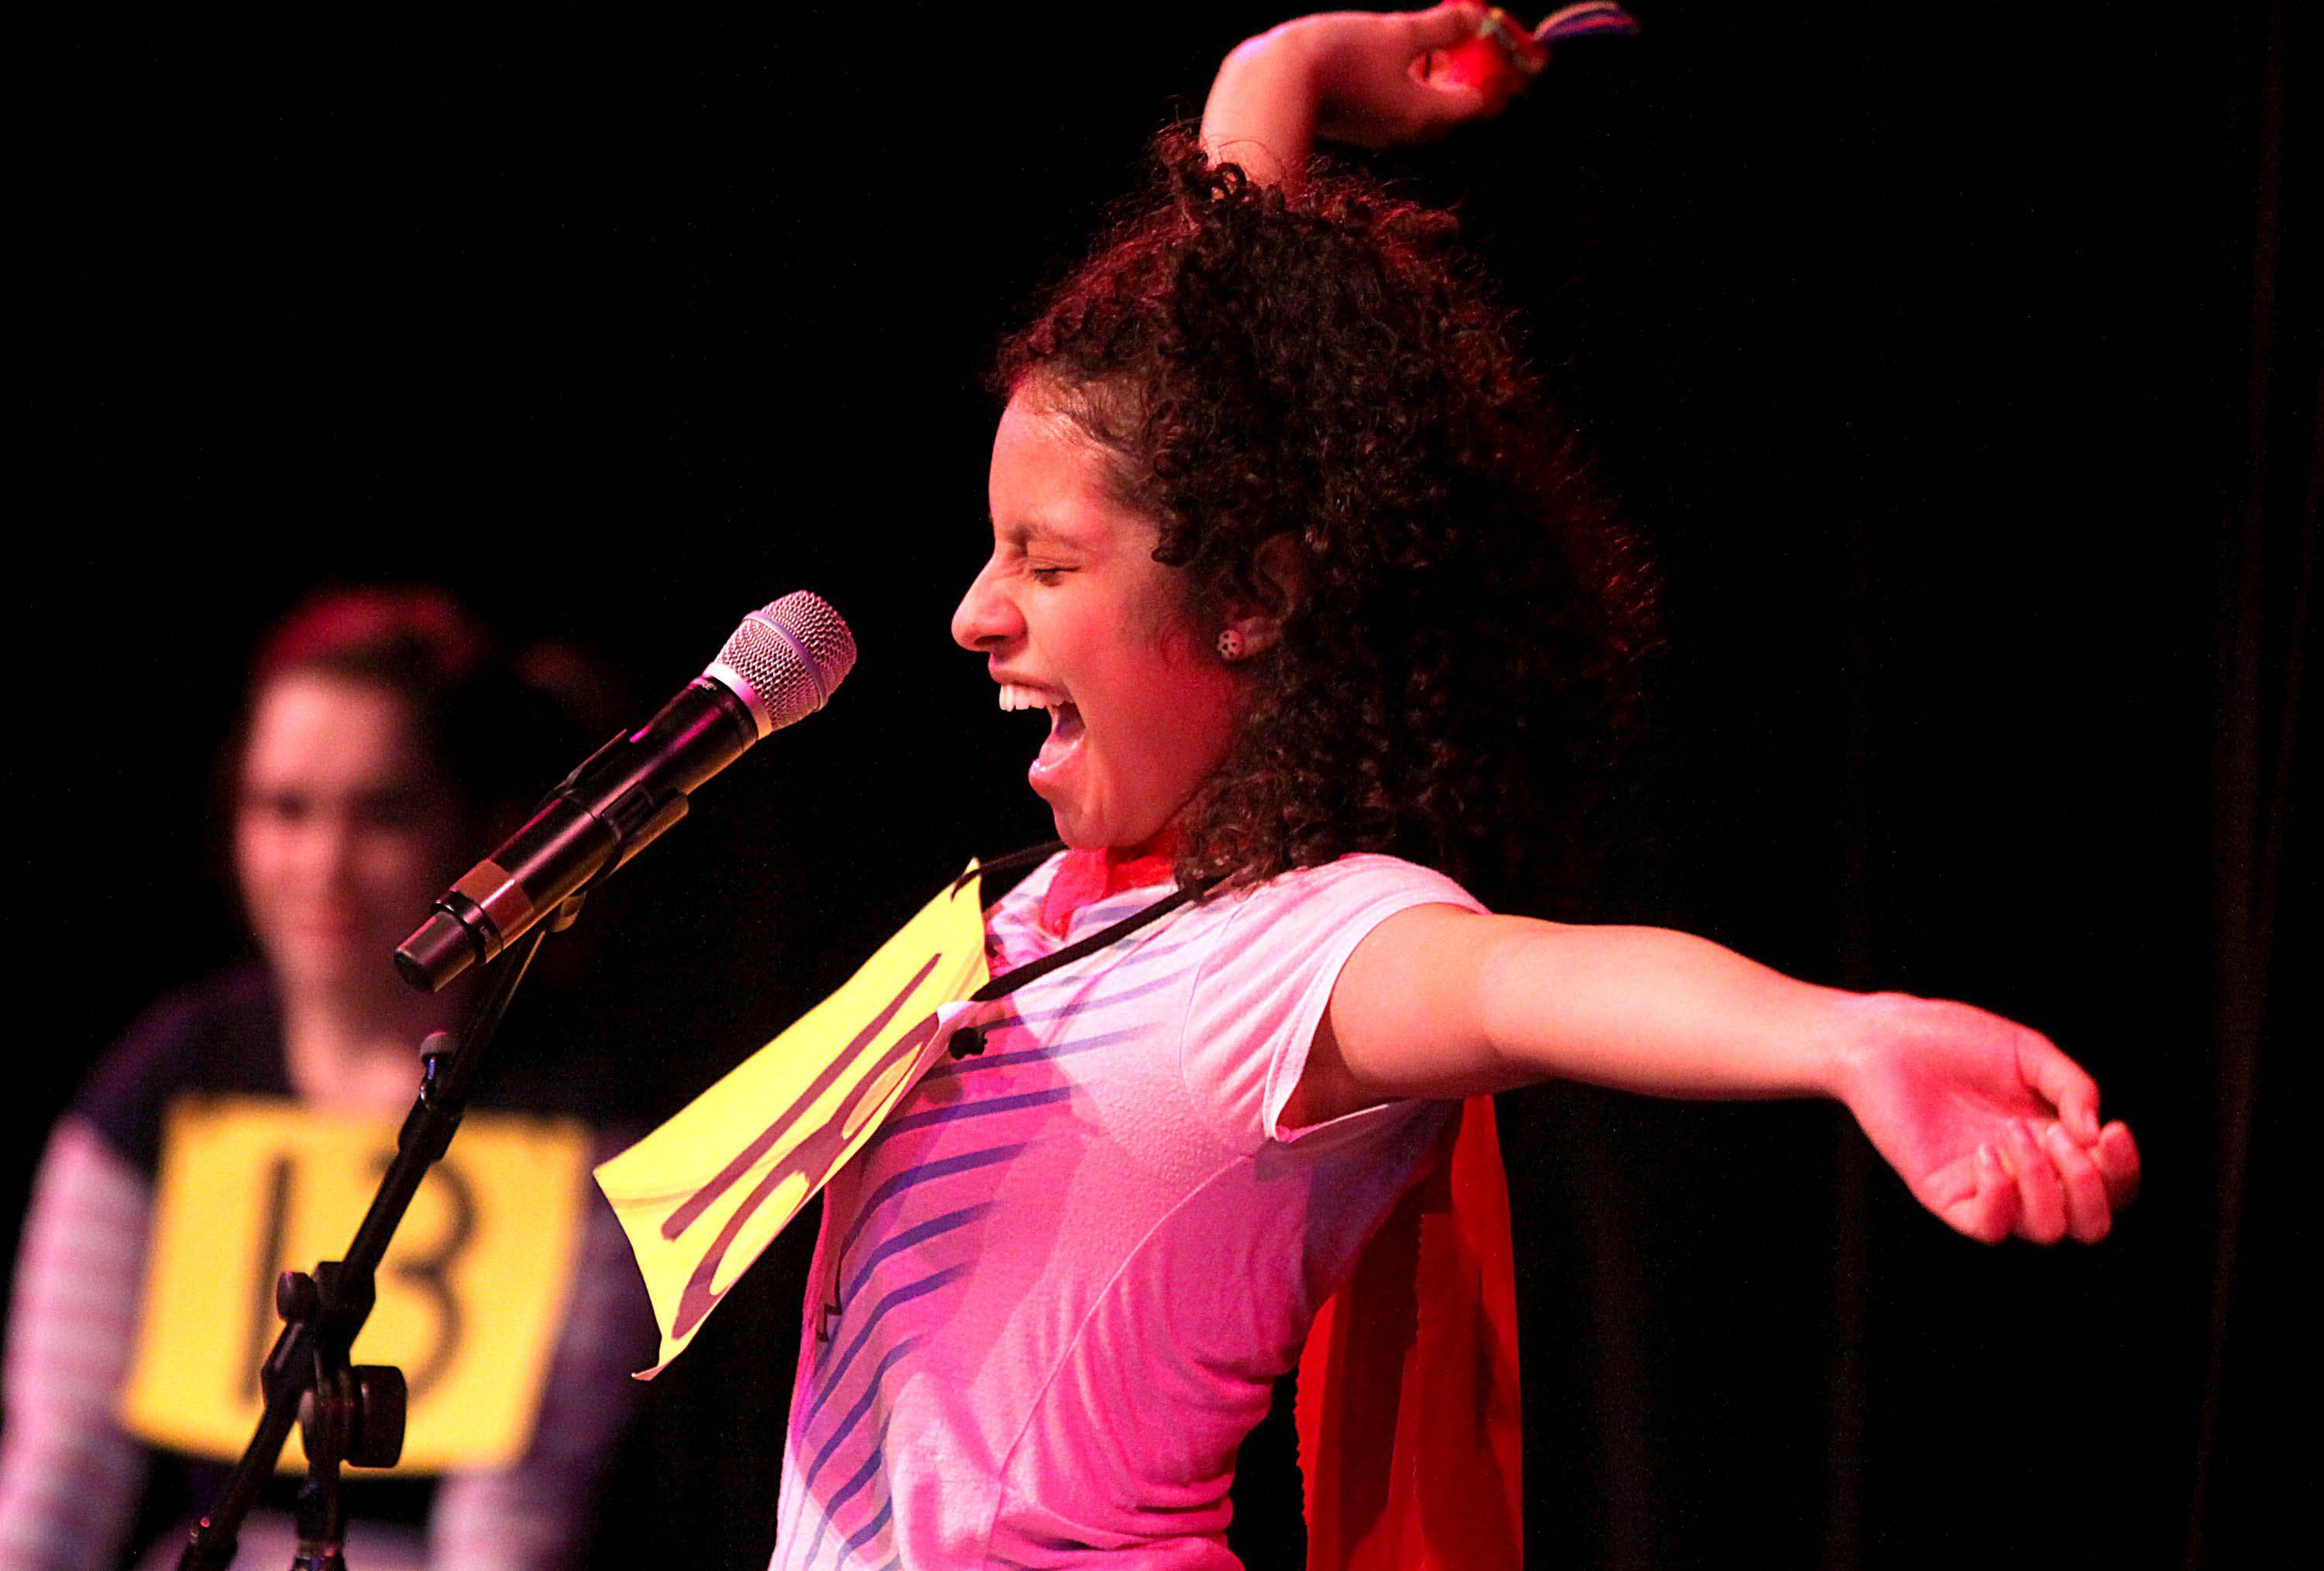 Paulina Nava of Larkin High School performs her dramatic vocal act as part of the Talent Fest Follow Your Star show at the Hemmens Cultural Center in Elgin on Tuesday night. Nava, accompanied by Clee McKracken, Katrina Syrris, and Maggie Koch, won first place in the competition.